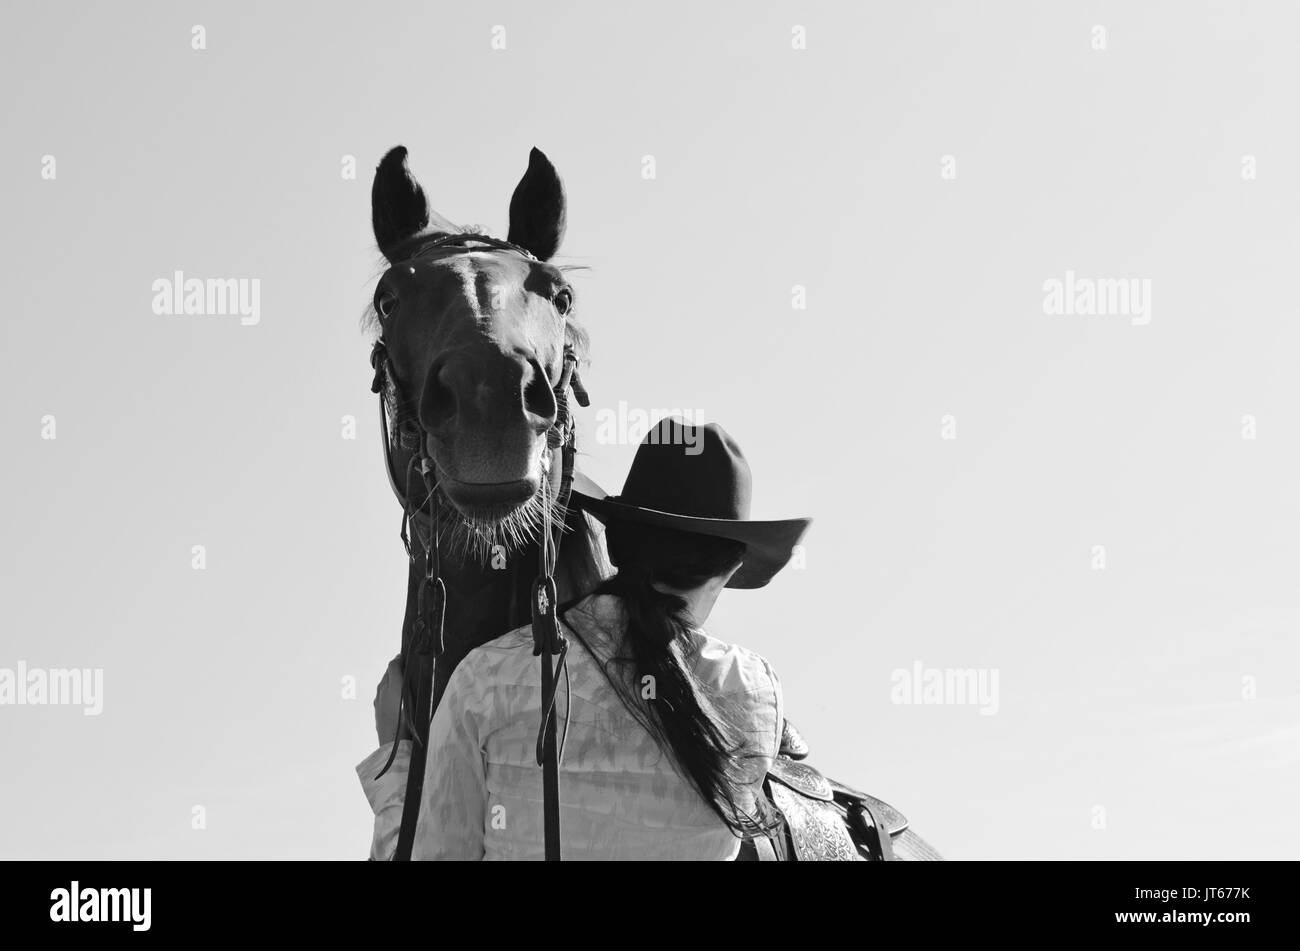 Country girl in cowboy hat with cute horse looking over her shoulder dfd8f93714aa